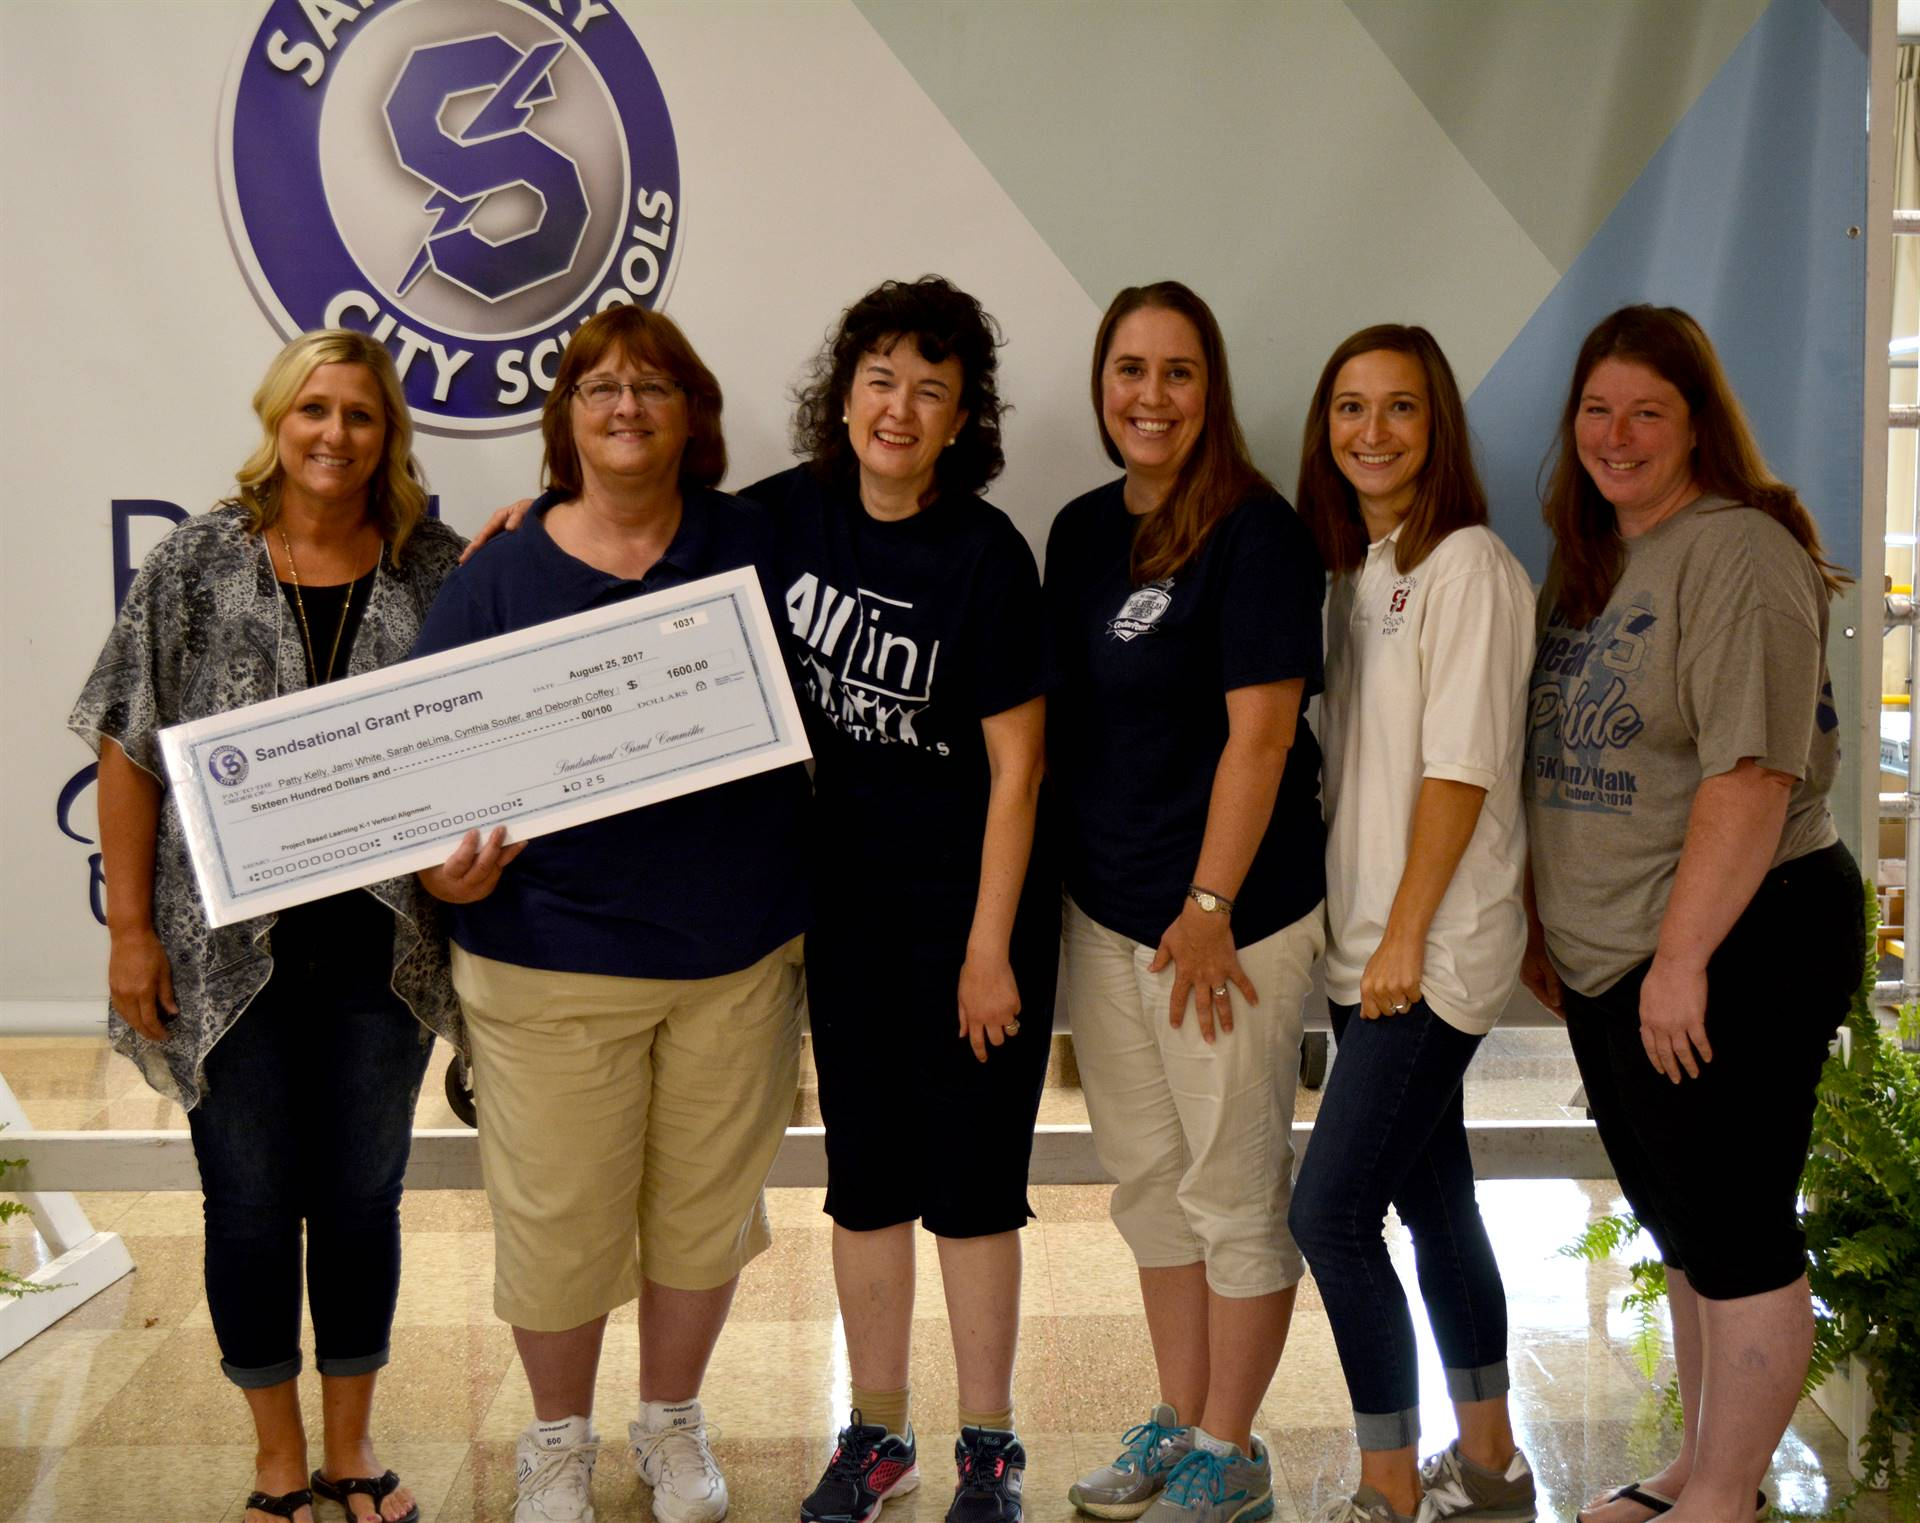 Osborne Teachers, Grant Winners